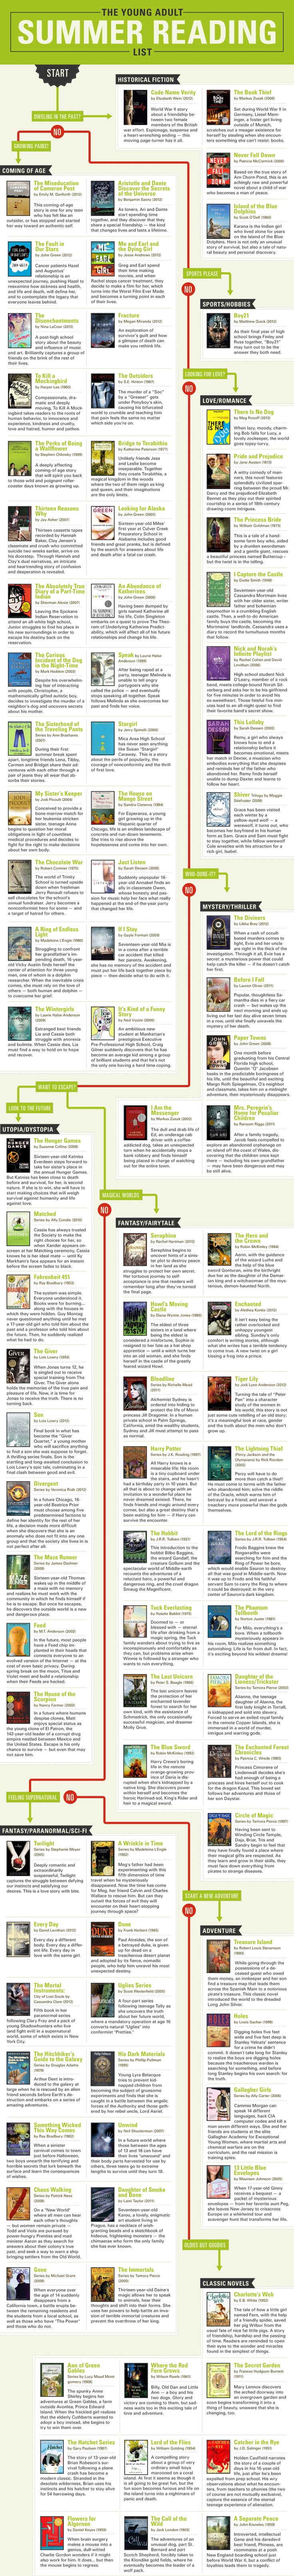 The Young Adult Summer Reading Flowchart